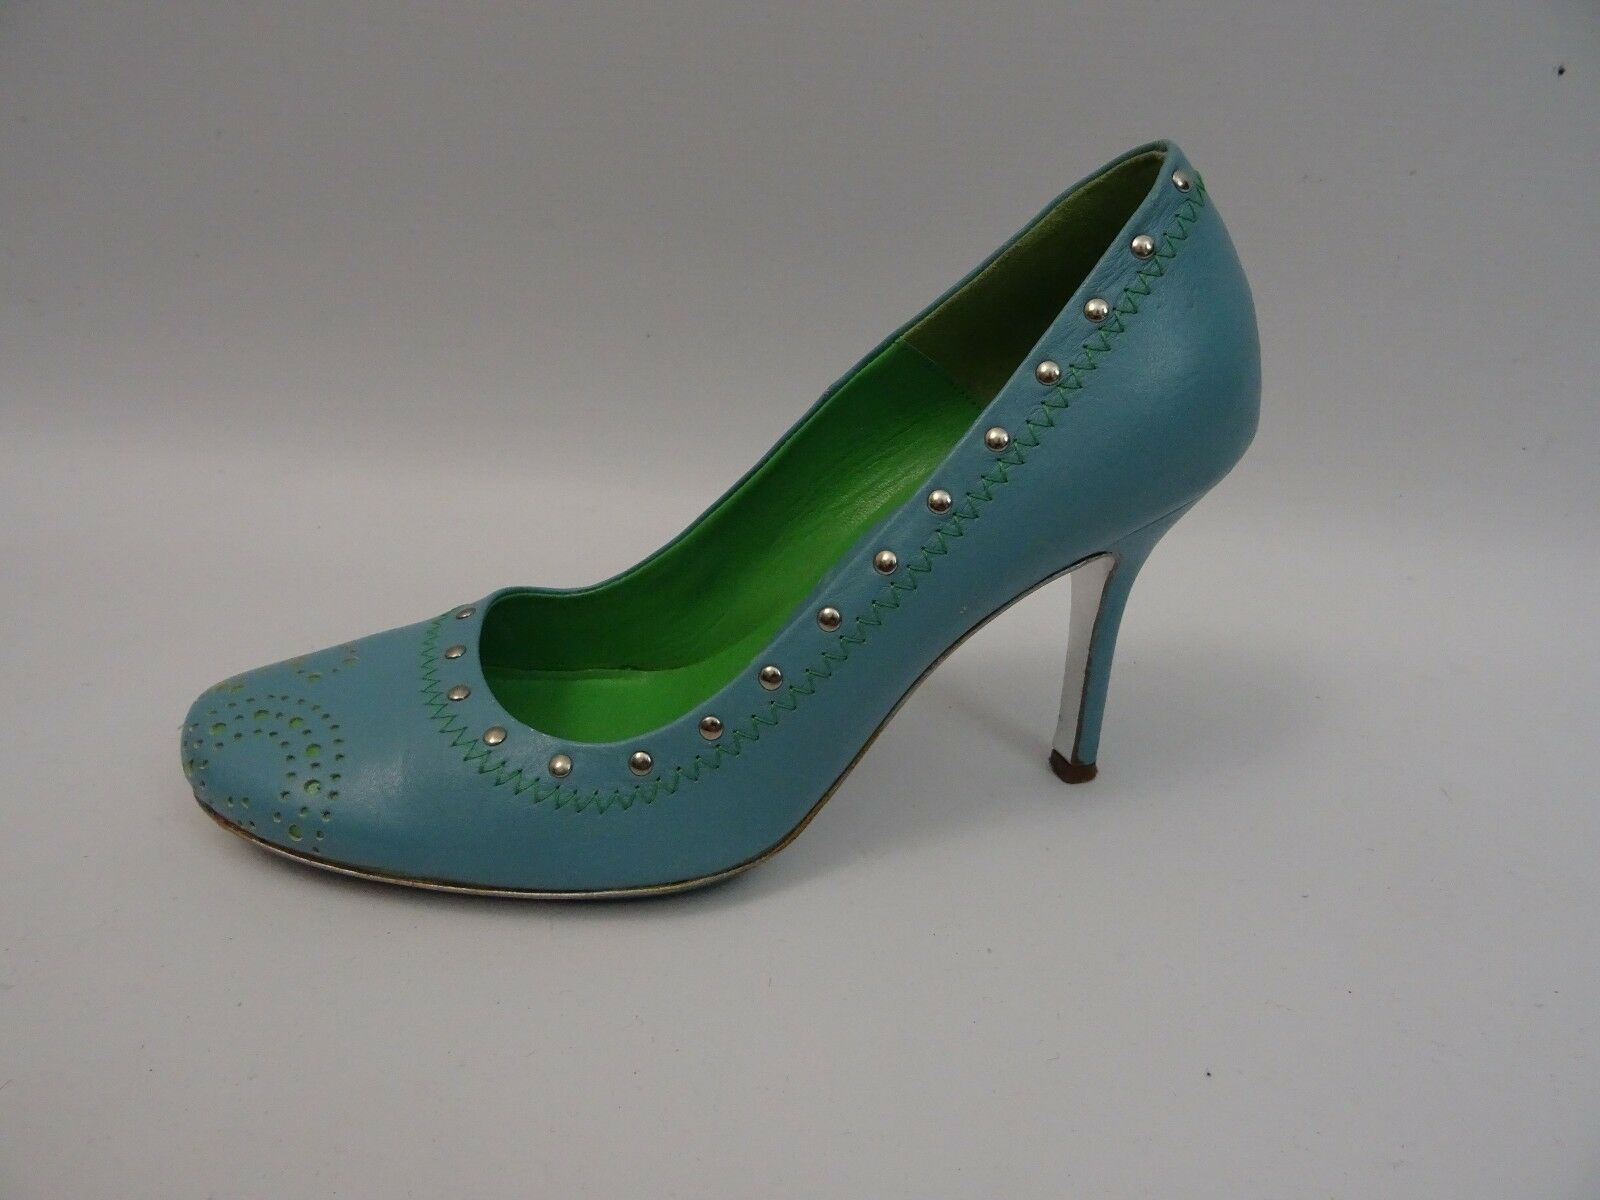 Dolce&Gabbana Damen Schuhe Pumps Hellblau - High Grün Gr. 38 Leder High - Heels Shoes 4cb02c